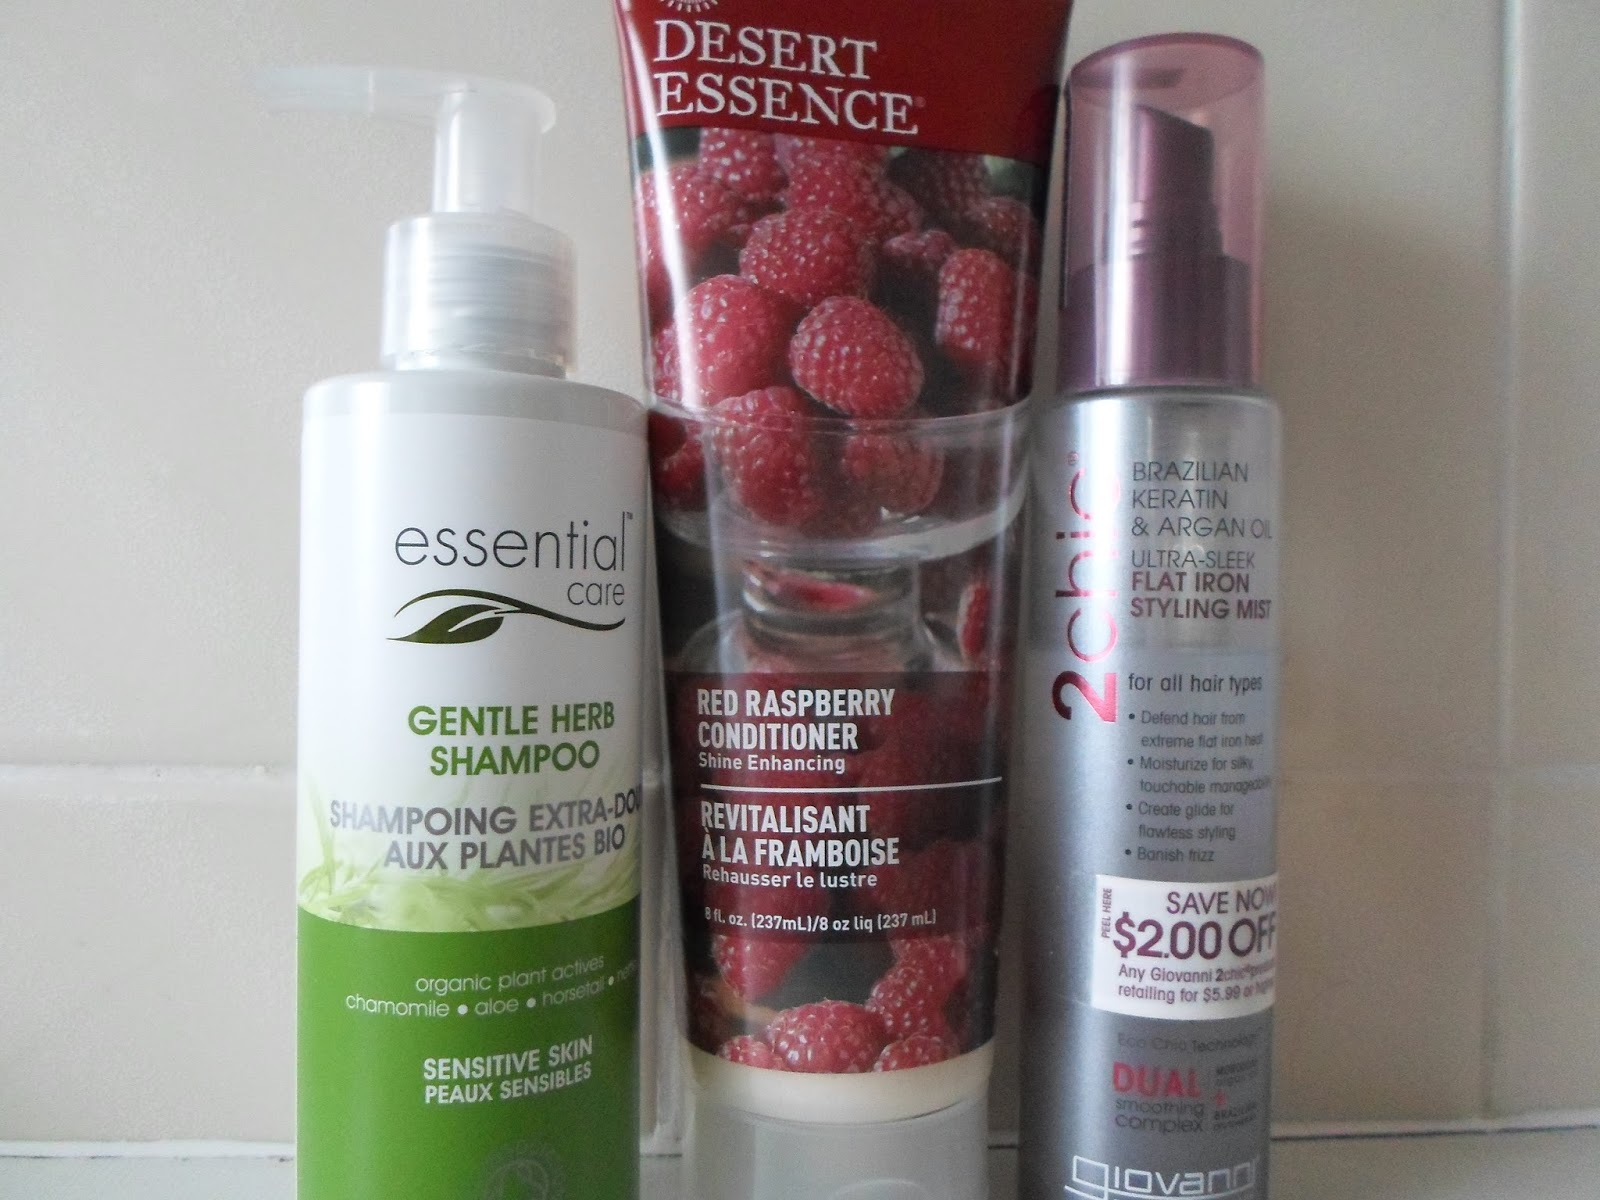 Haircare Essential Care, Desert Essence & Giovanni